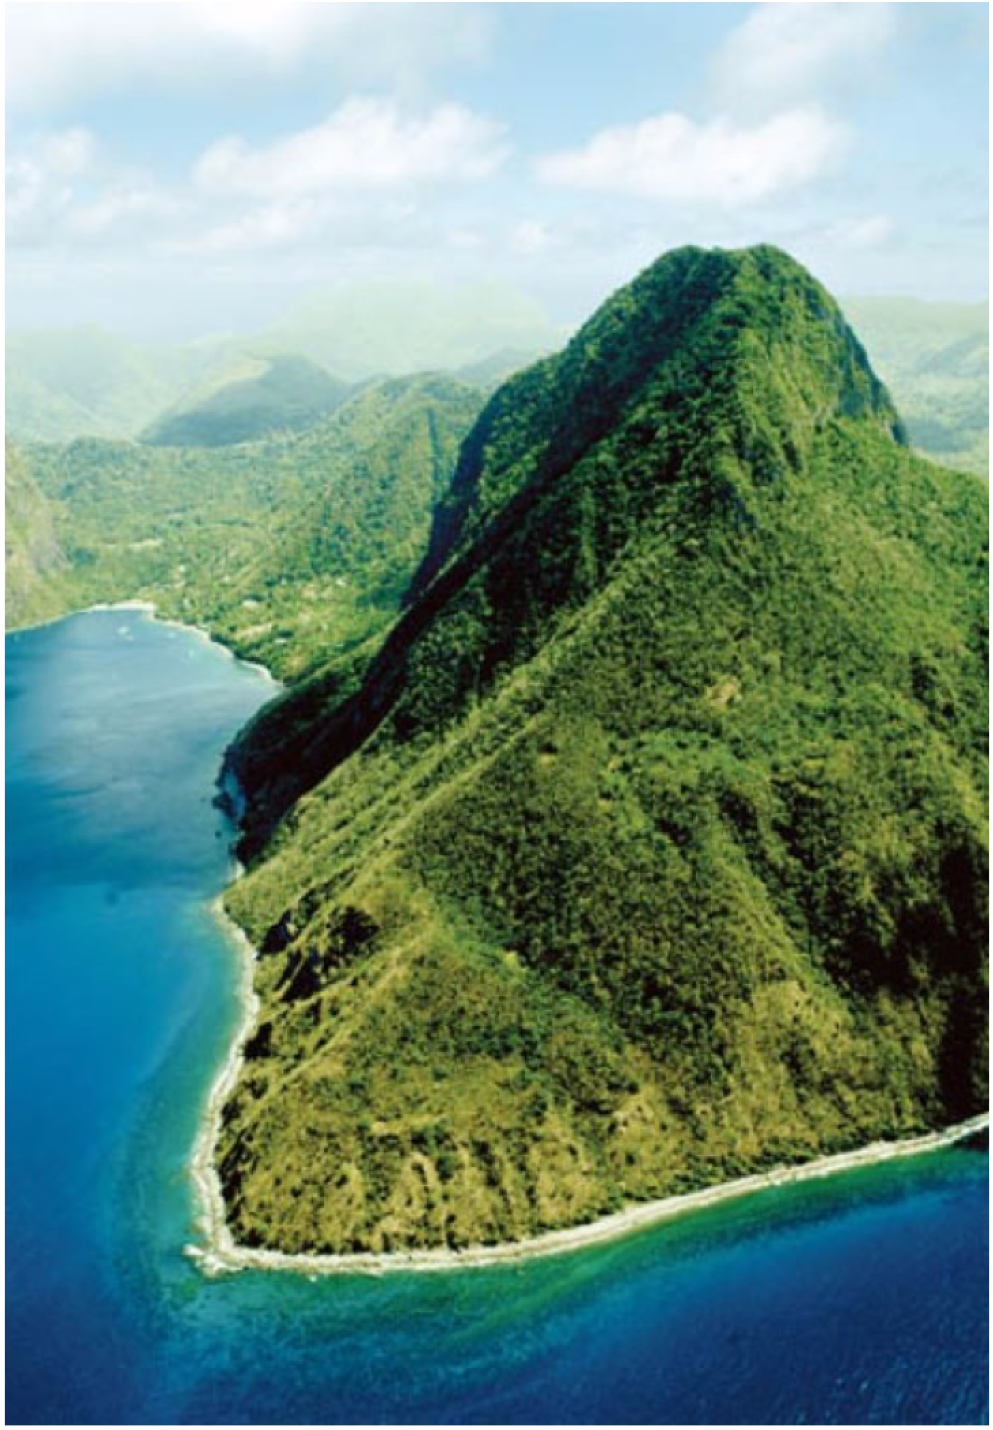 PITON MOUNTAINS   On the South West coast of the island, in the town of la Soufriere, lies the island's majestic UNESCO World Heritage Site. Providing great spots for snorkelers and divers, whilst walkers will be delighted by the Gros Piton Trail, a 4 to 5 hours trek to the top of the mountain and offering breathtaking views of the island.